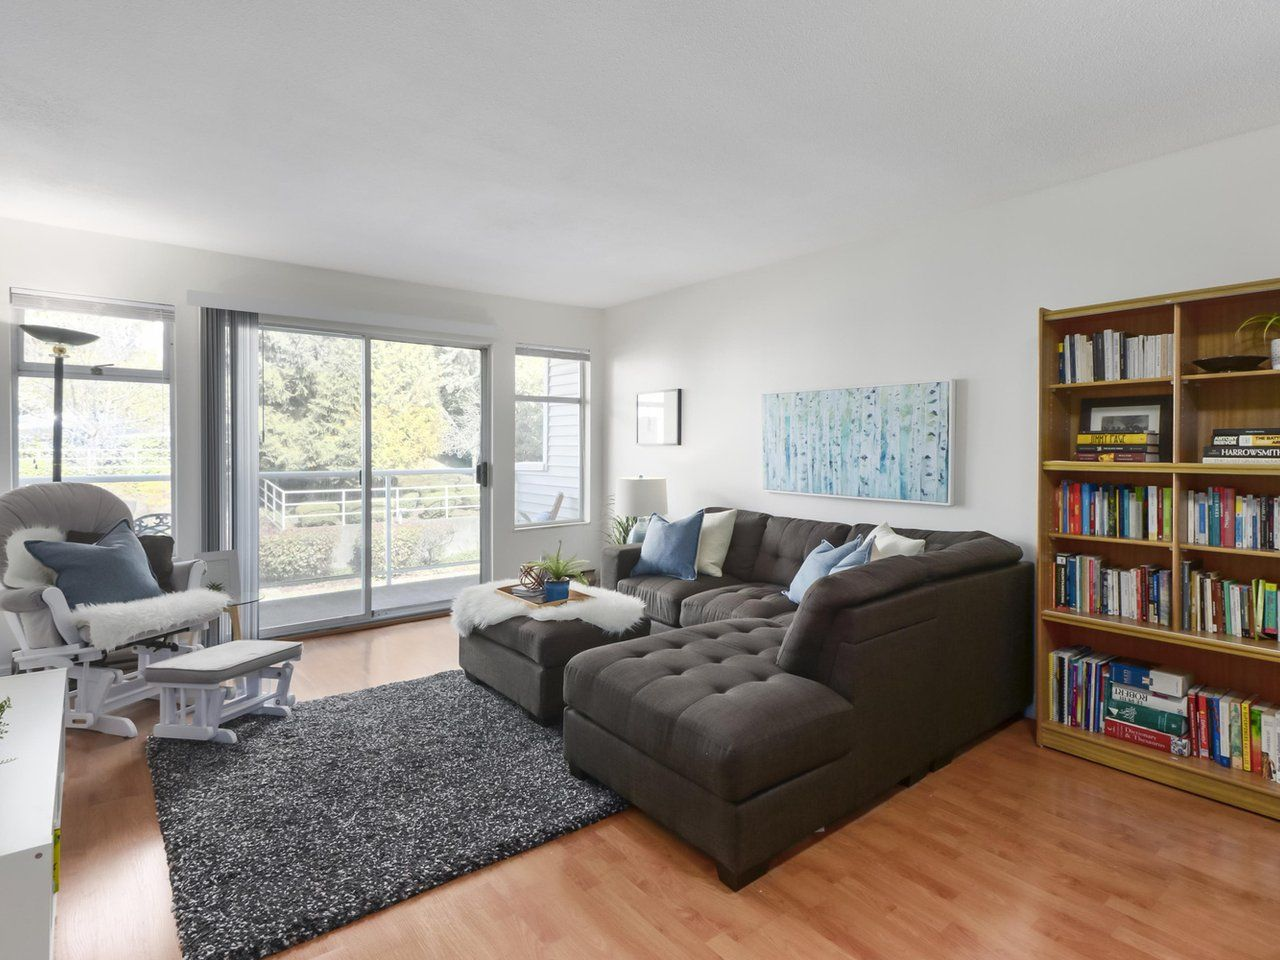 """Main Photo: 310 5335 HASTINGS Street in Burnaby: Capitol Hill BN Condo for sale in """"THE TERRACES"""" (Burnaby North)  : MLS®# R2447868"""